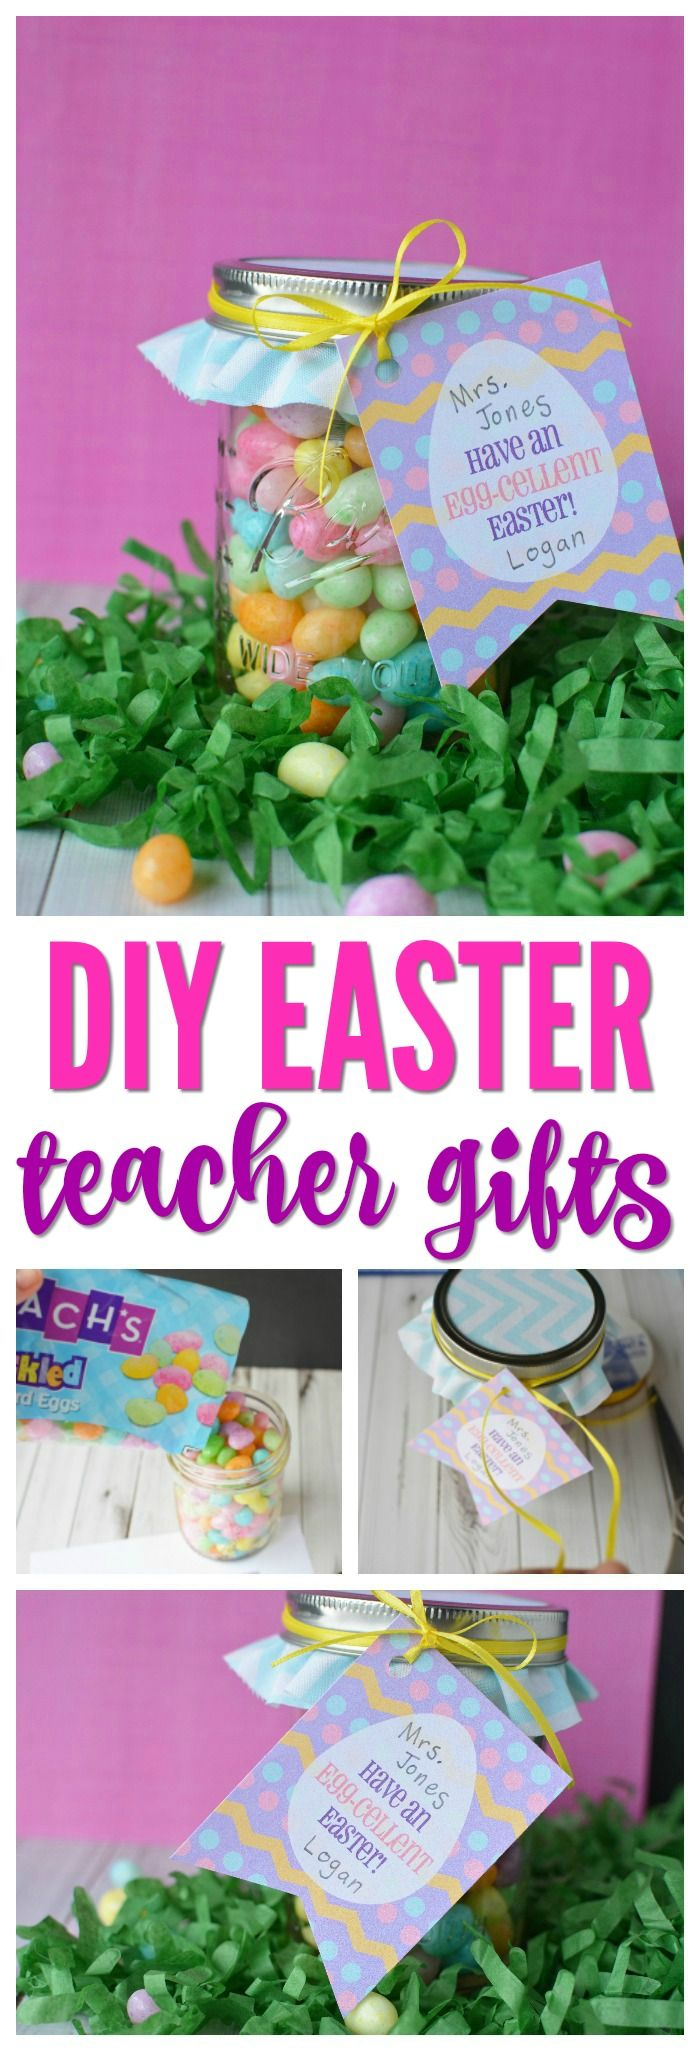 149 best teacher gifts images on pinterest presents for teachers 149 best teacher gifts images on pinterest presents for teachers teacher appreciation and teacher appreciation gifts negle Images